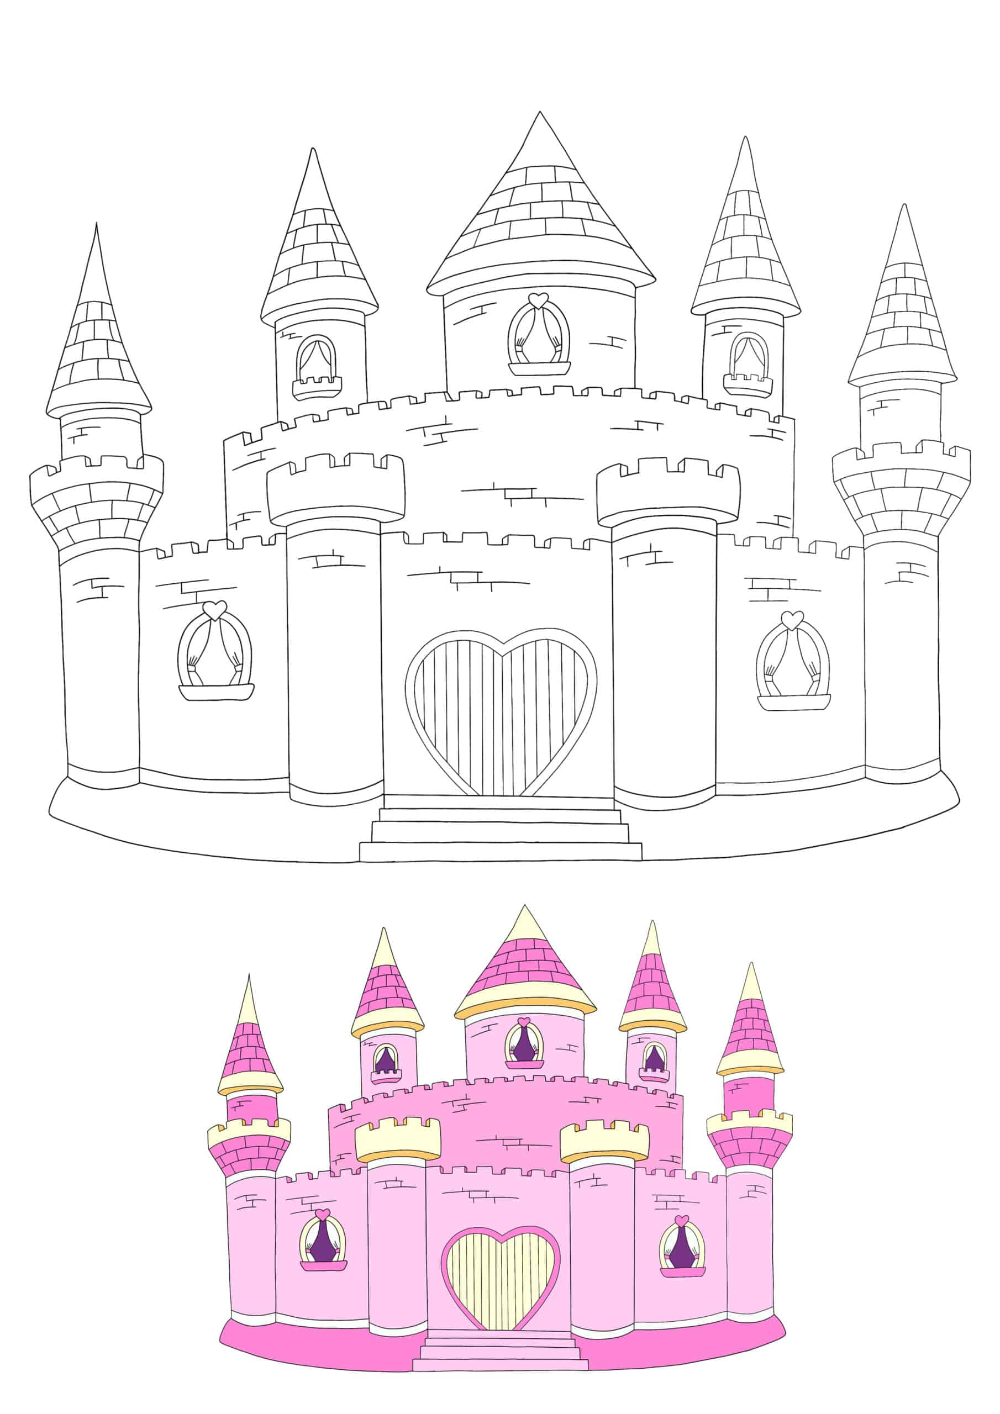 Princess Castle Coloring Pages 2 Free Coloring Sheets 2020 Princess Coloring Pages Disney Princess Palace Pets Disney Princess Aurora